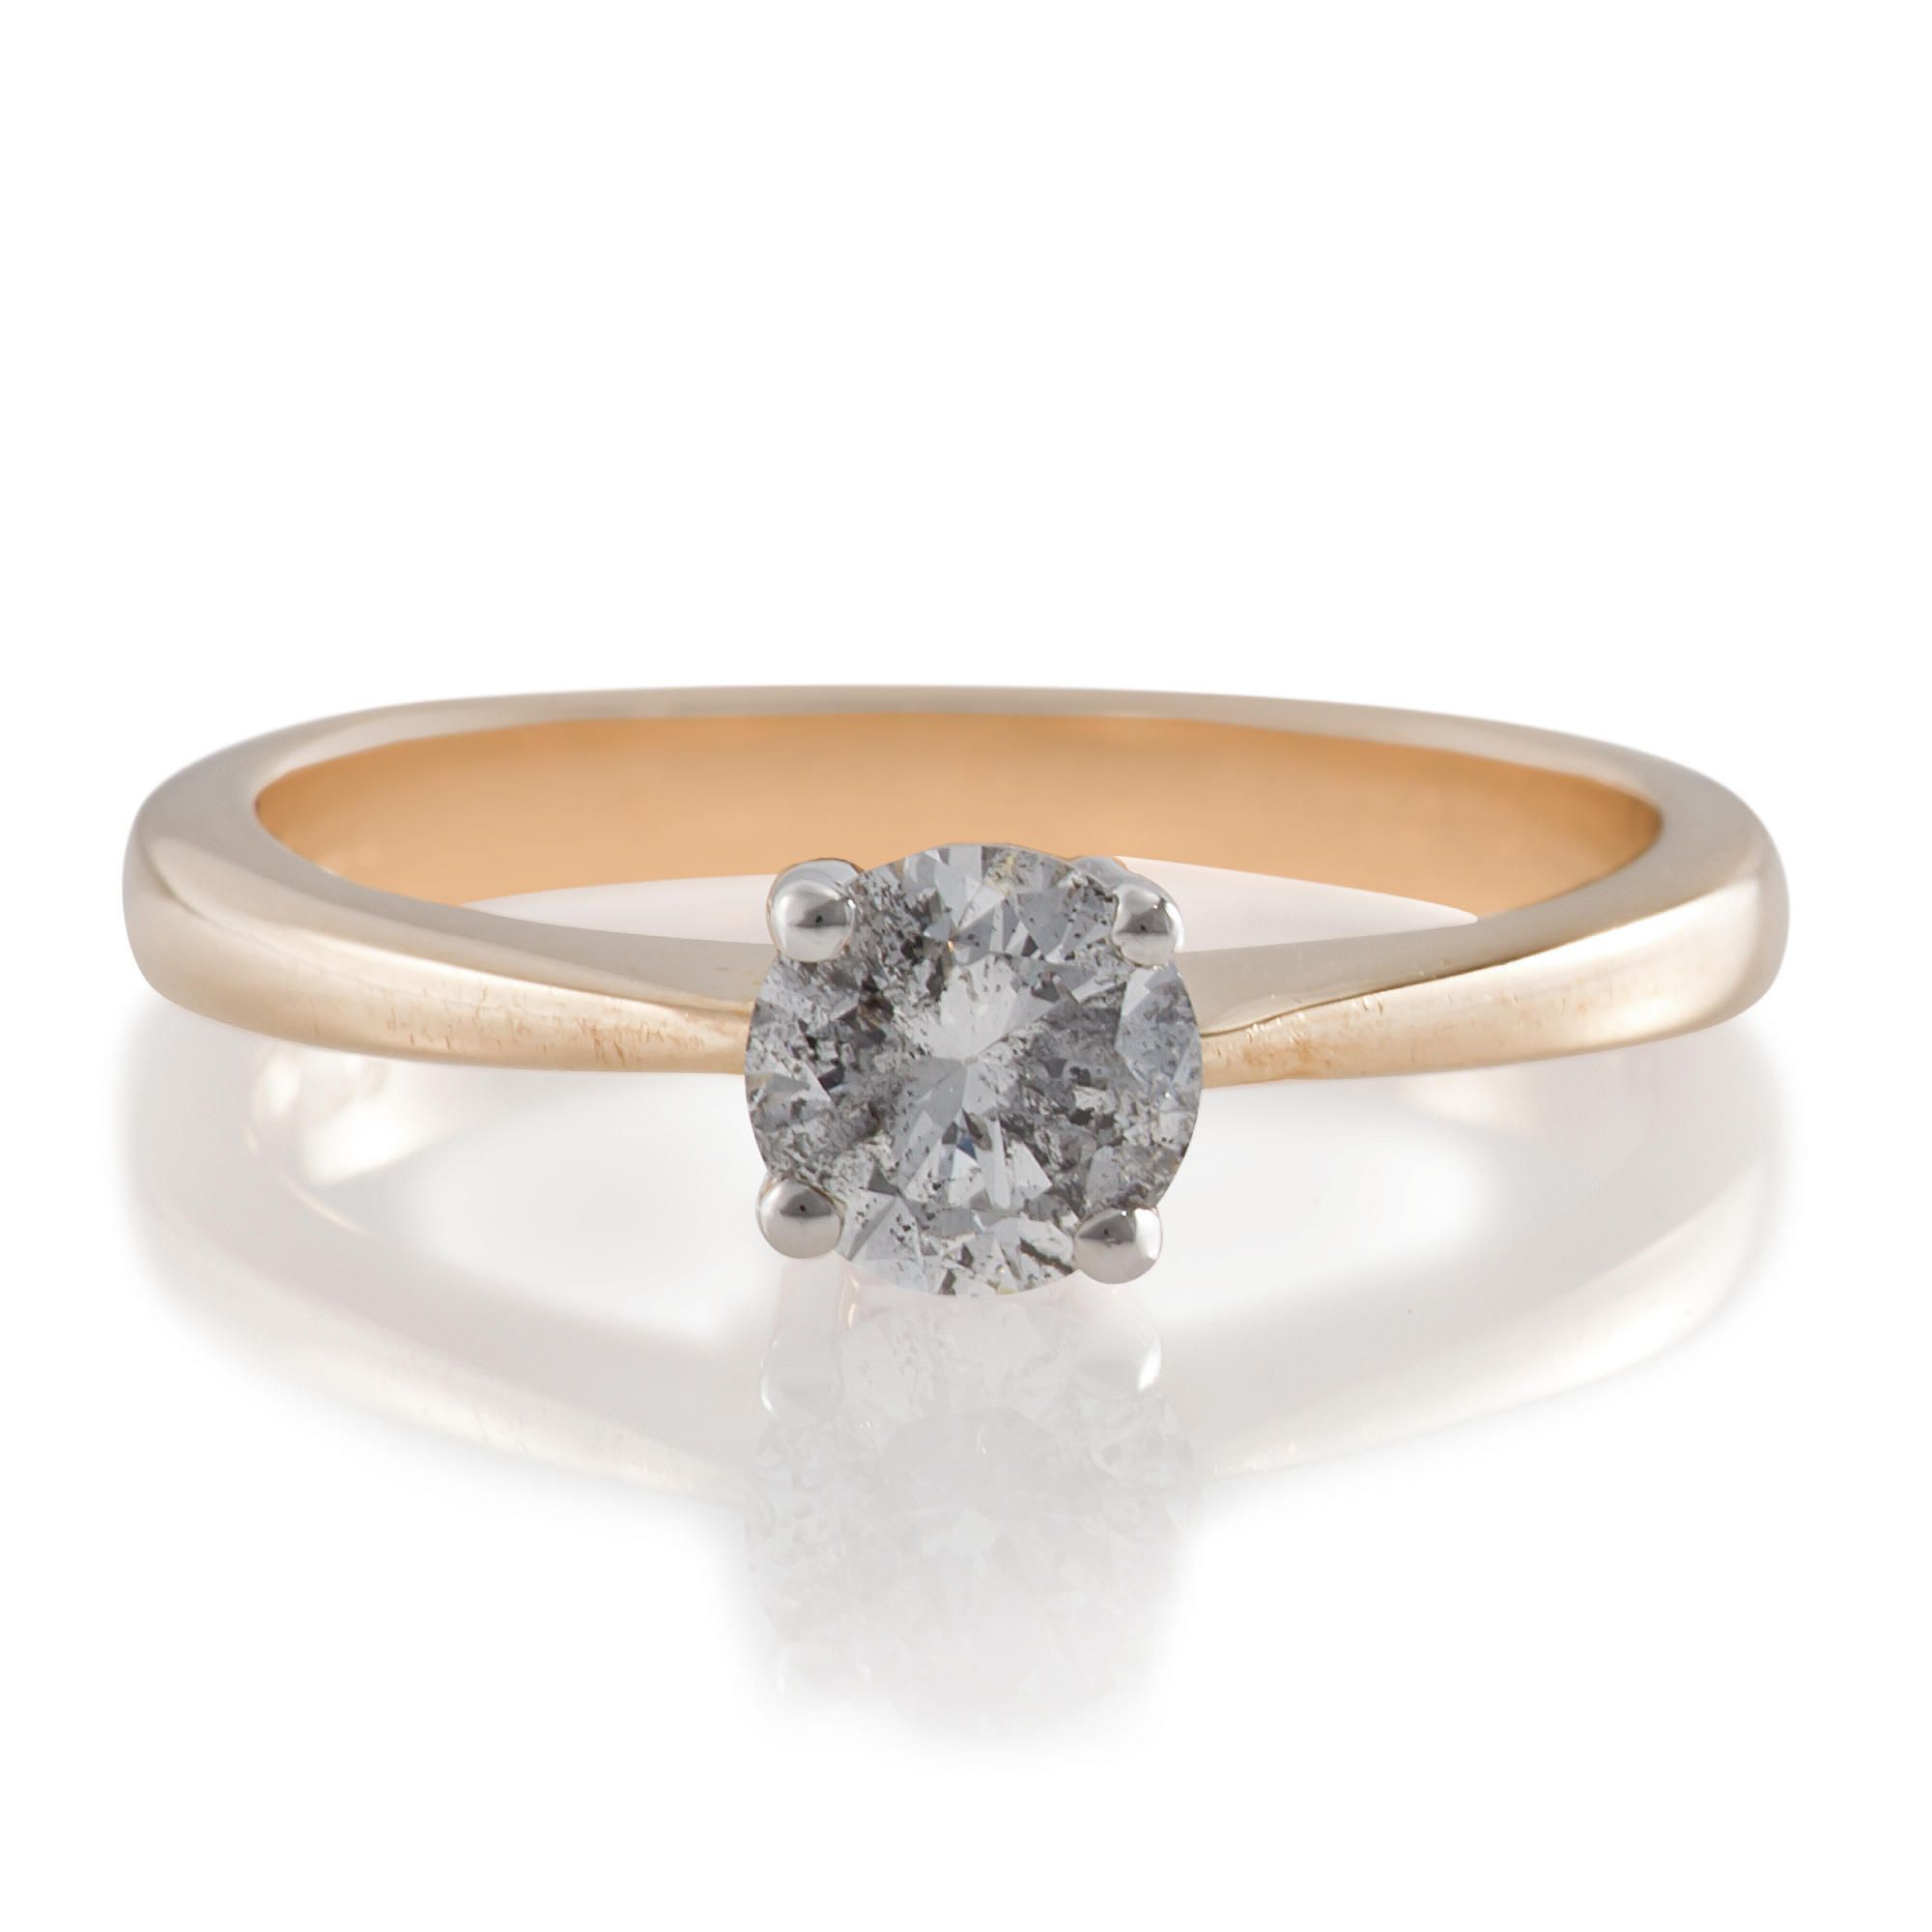 9ct Gold 50Pt Diamond Solitaire Ring, P at Tesco Direct